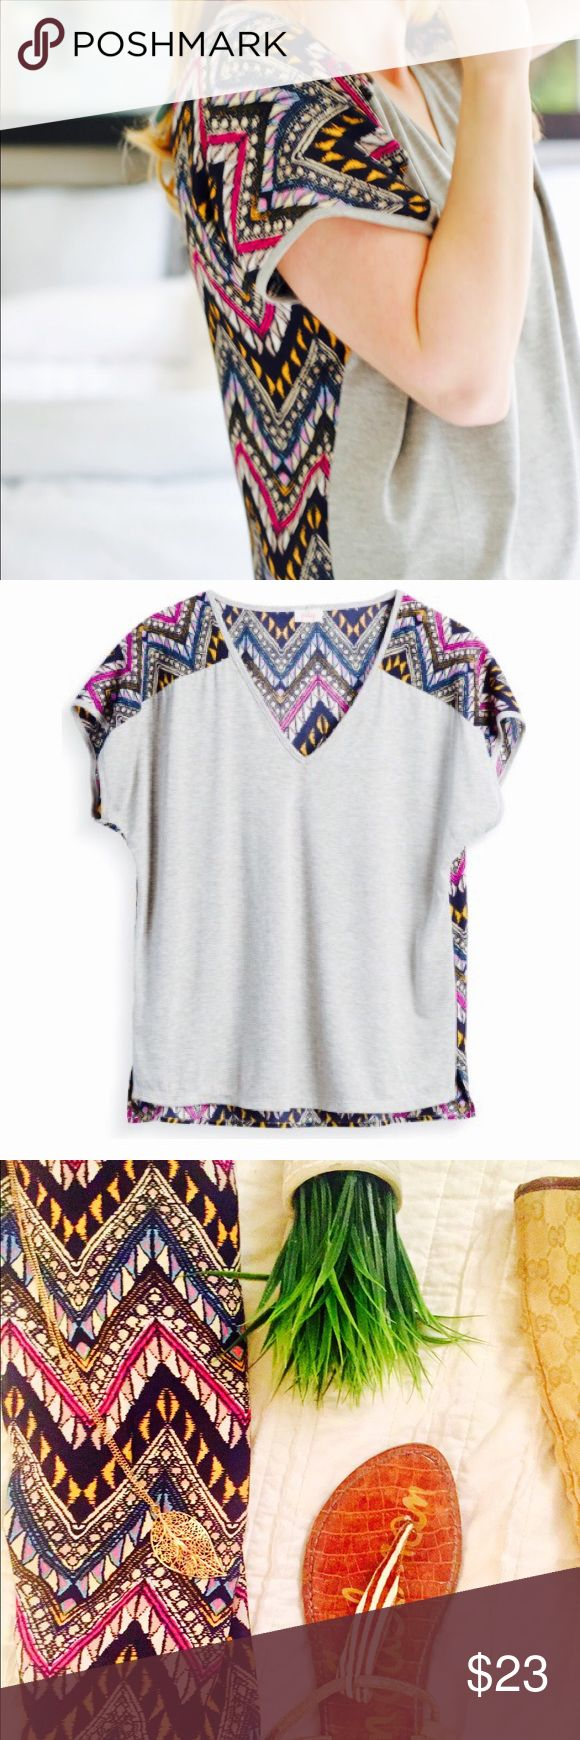 Pixely Aztec Blouse | M Multi print + gray | M | New with Tags | Pixely | V-neck | Bundle 2+ items + save 15% Pixley Tops Tees - Short Sleeve